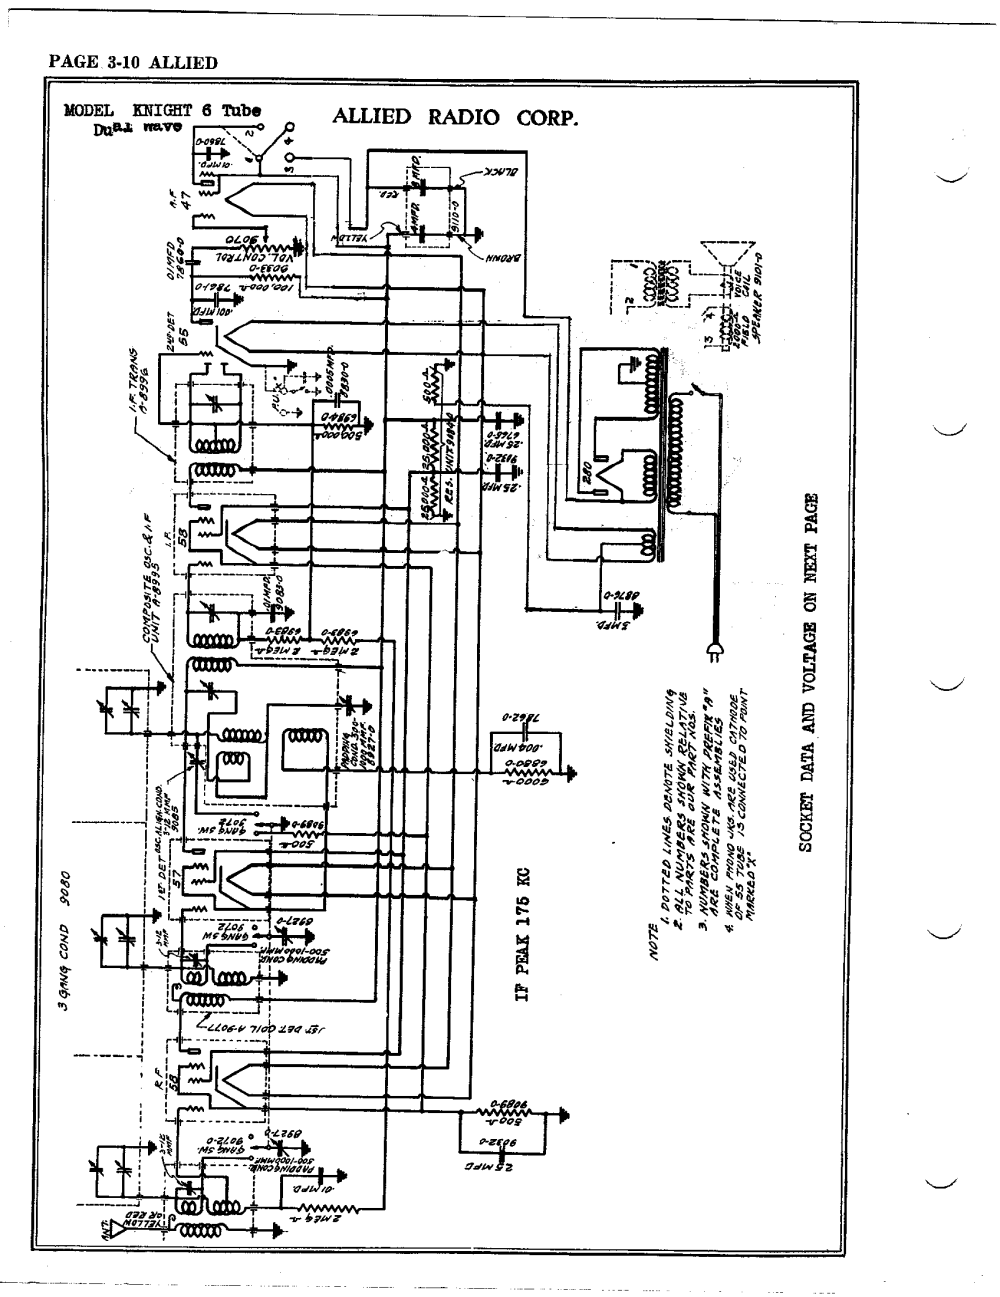 medium resolution of allied radio corp 6 tube dual wave antique electronic supply fm tube schematic tube radio schematics